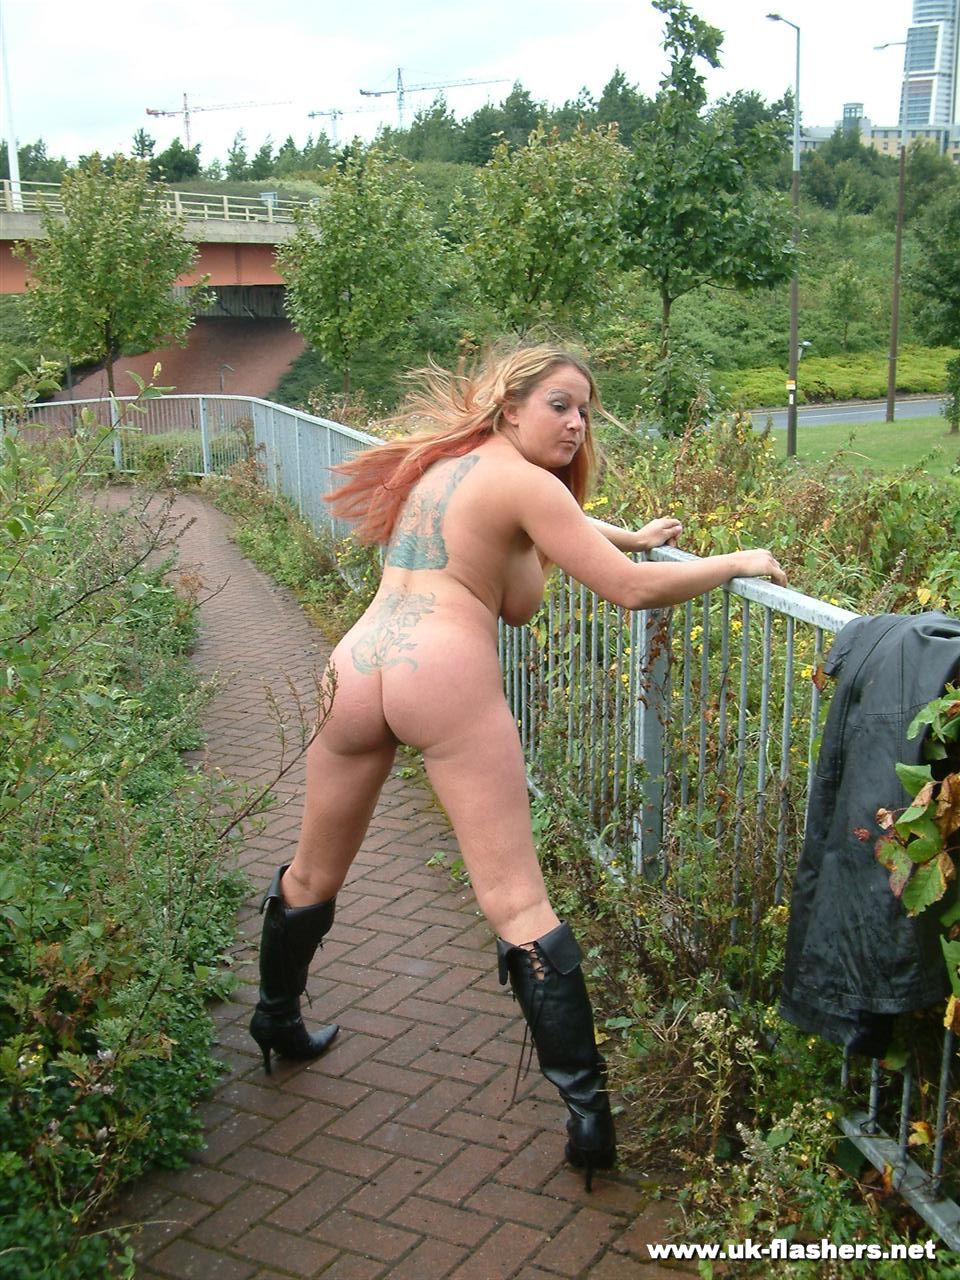 exhibitionist Milf public